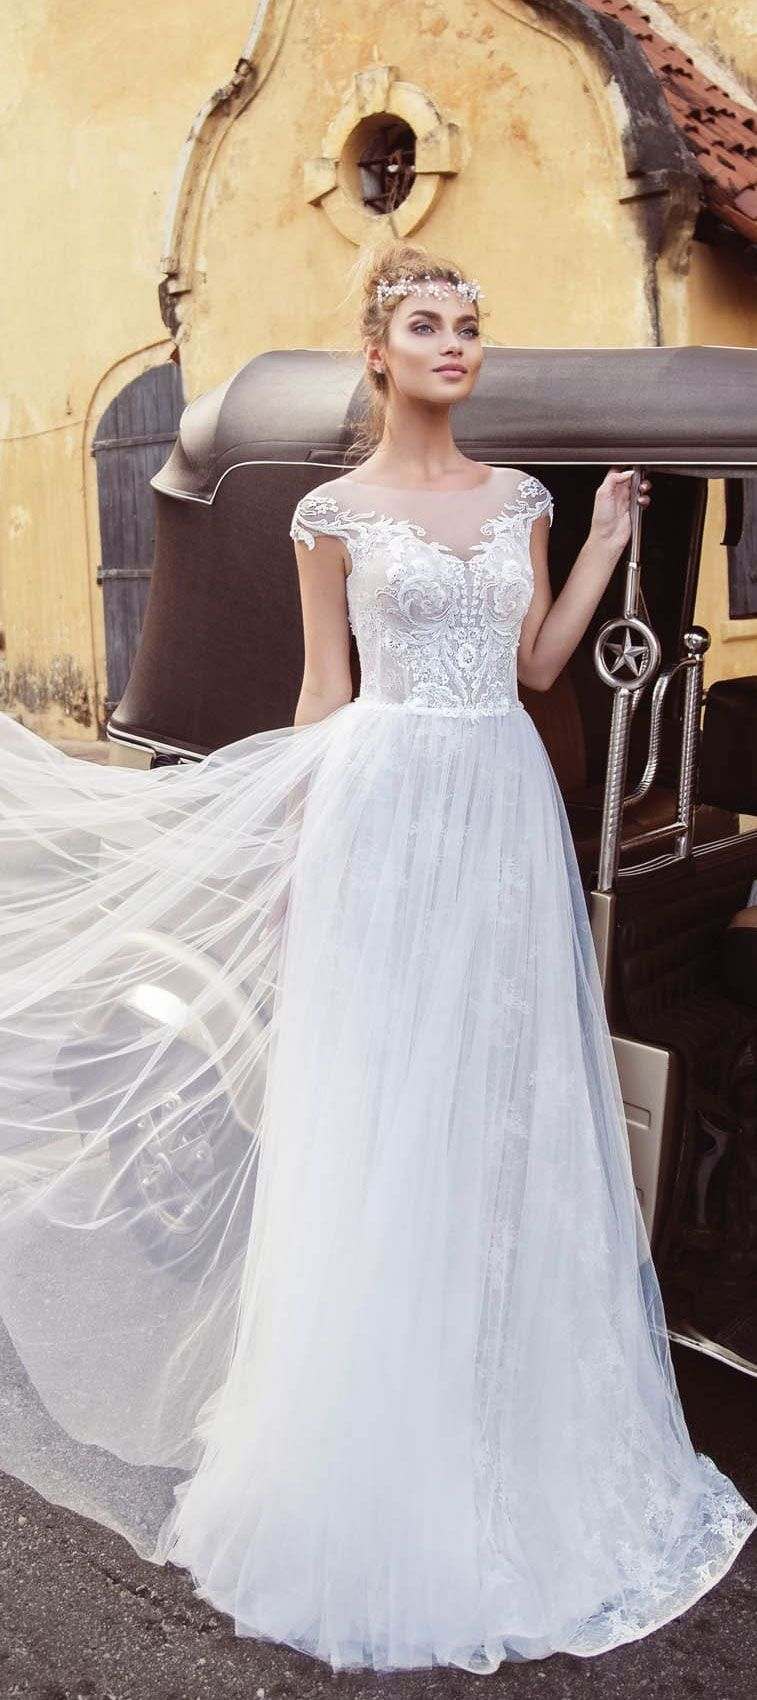 Lanesta Wedding Dresses - embellishment wedding dress, wedding gown | itakeyou.co.uk #weddingdress #weddinggown #weddingdresses #bridedress